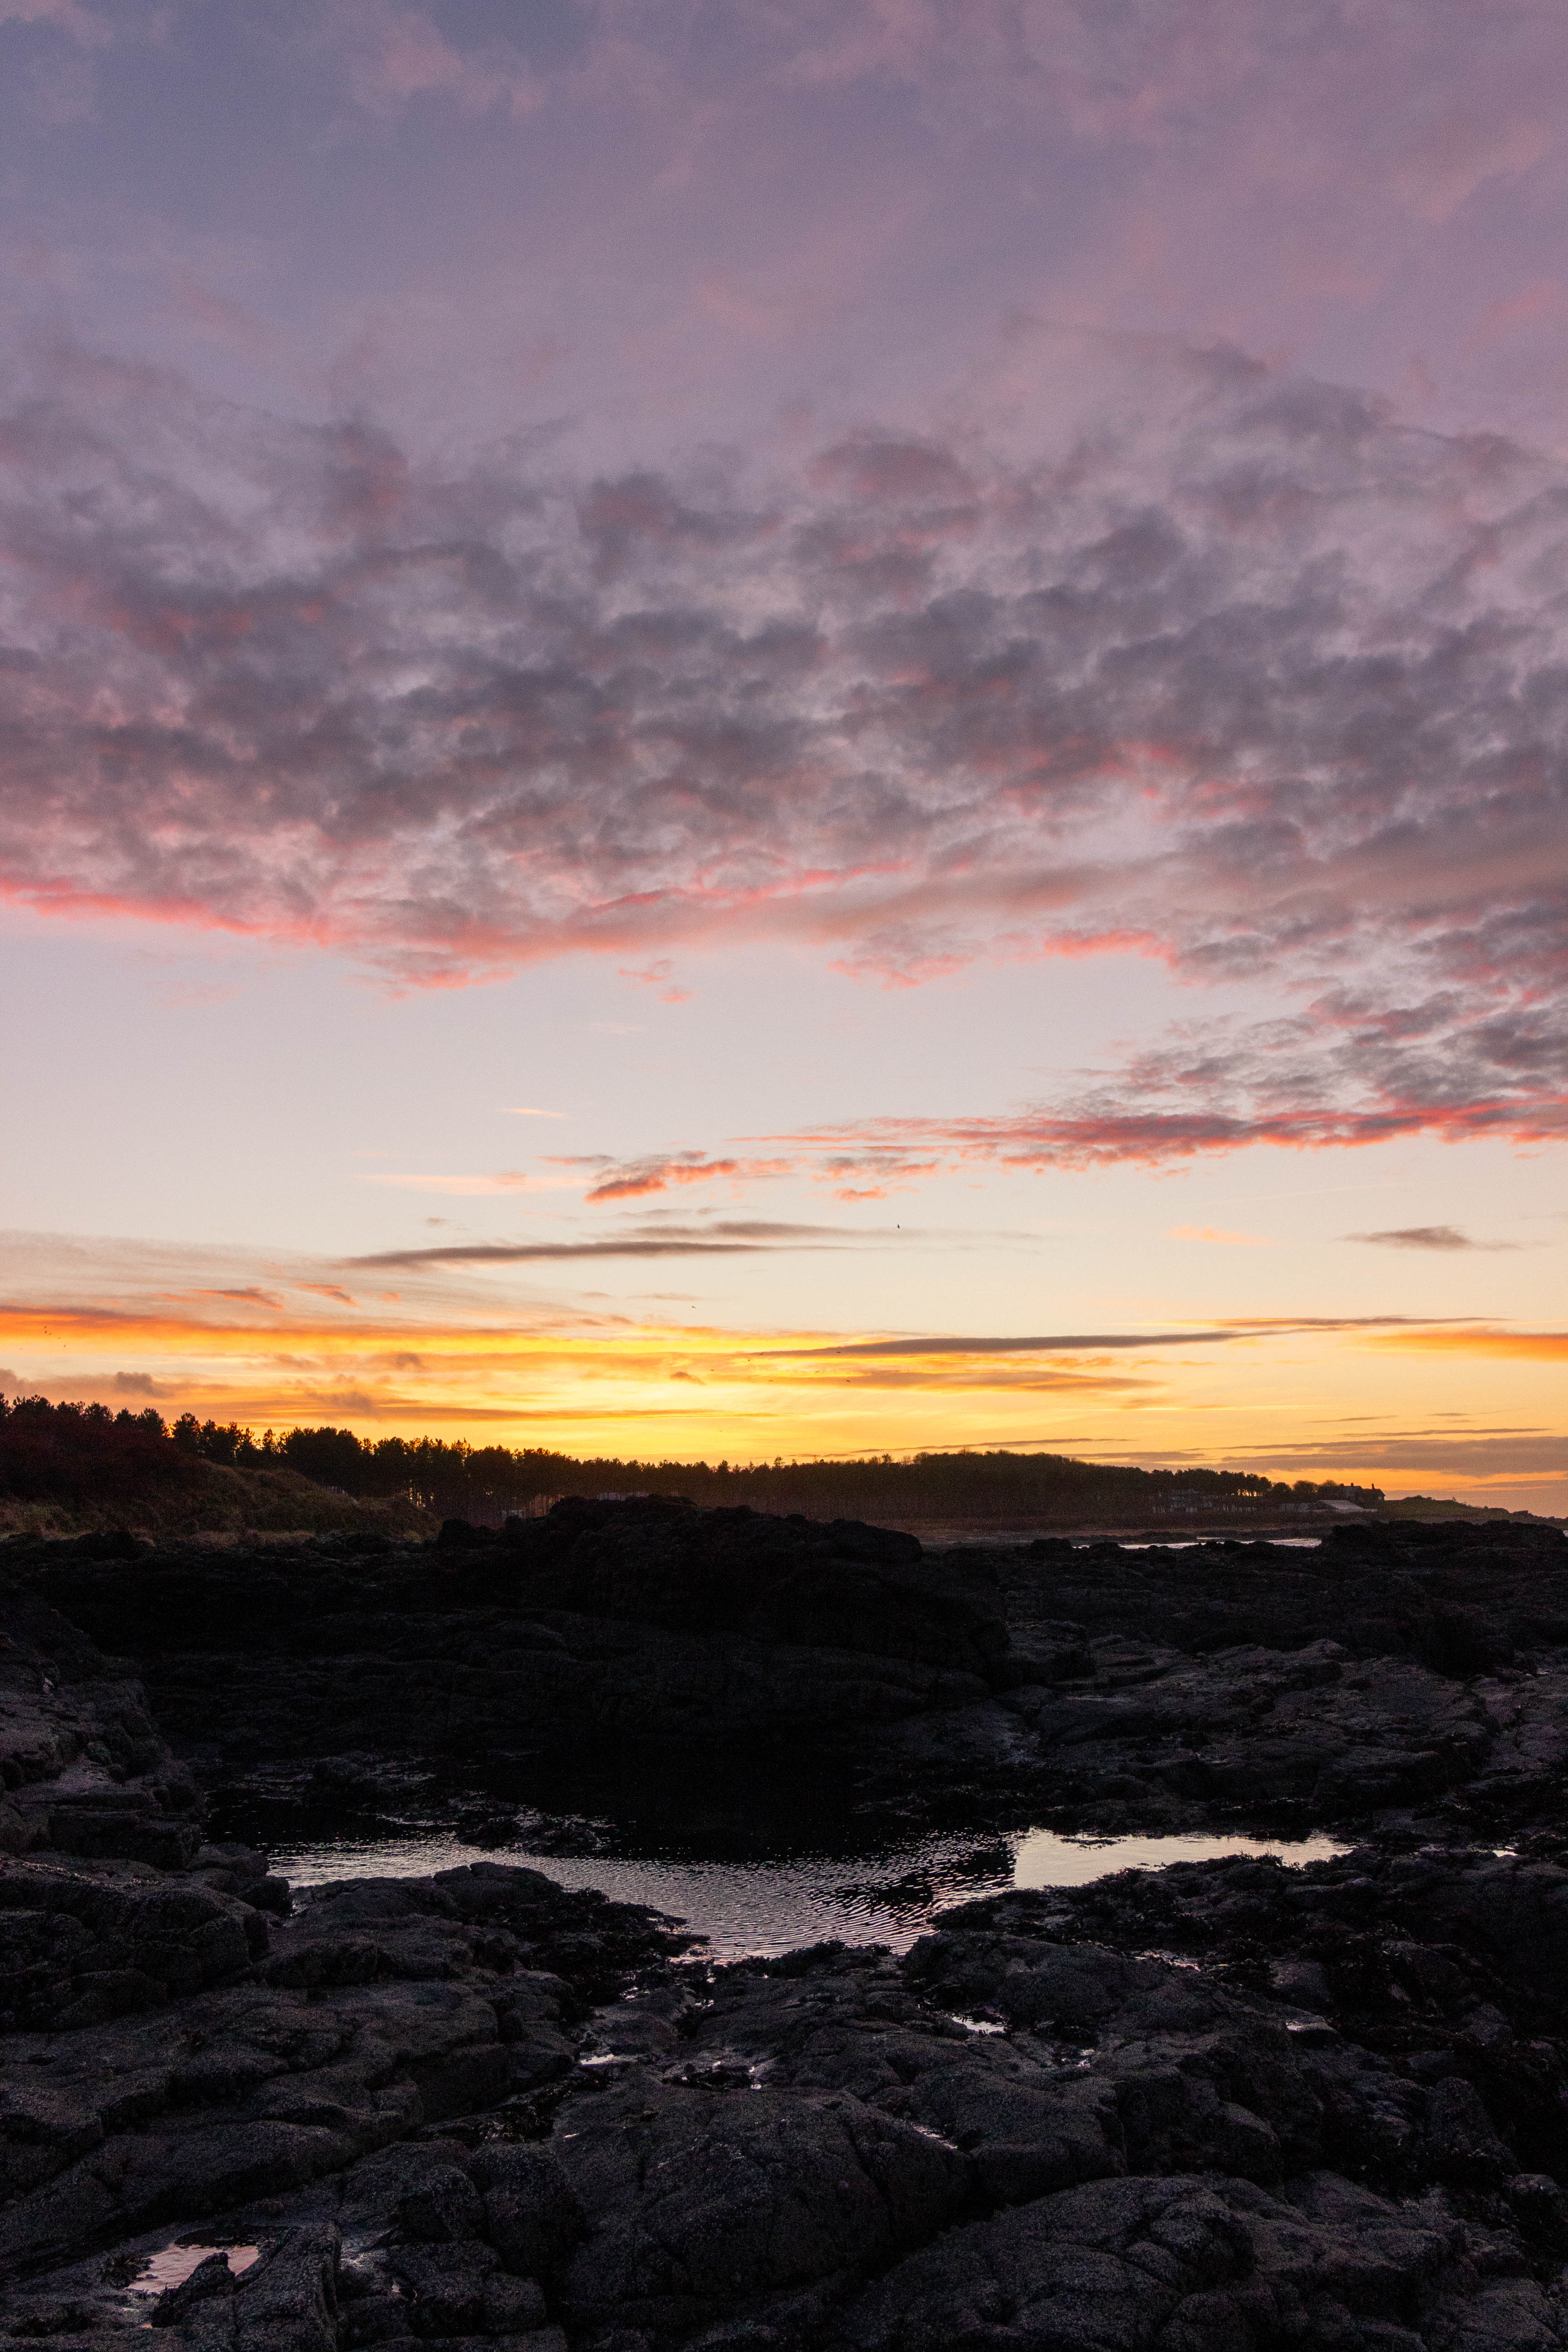 Sunset over a rockpool at Yellowcraig Beach